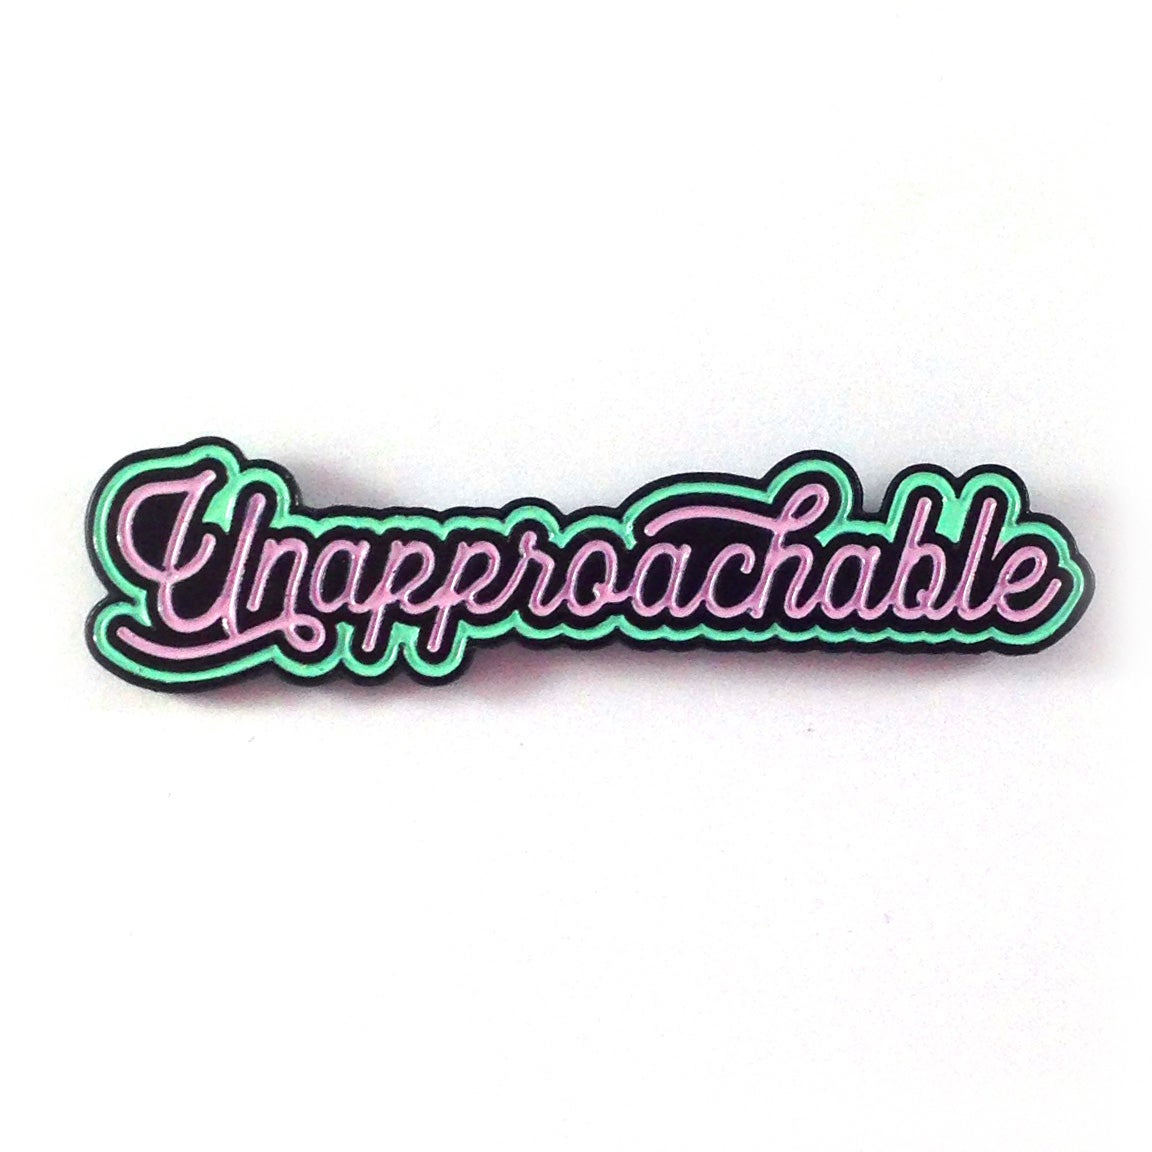 Image of Unapproachable Enamel Pin